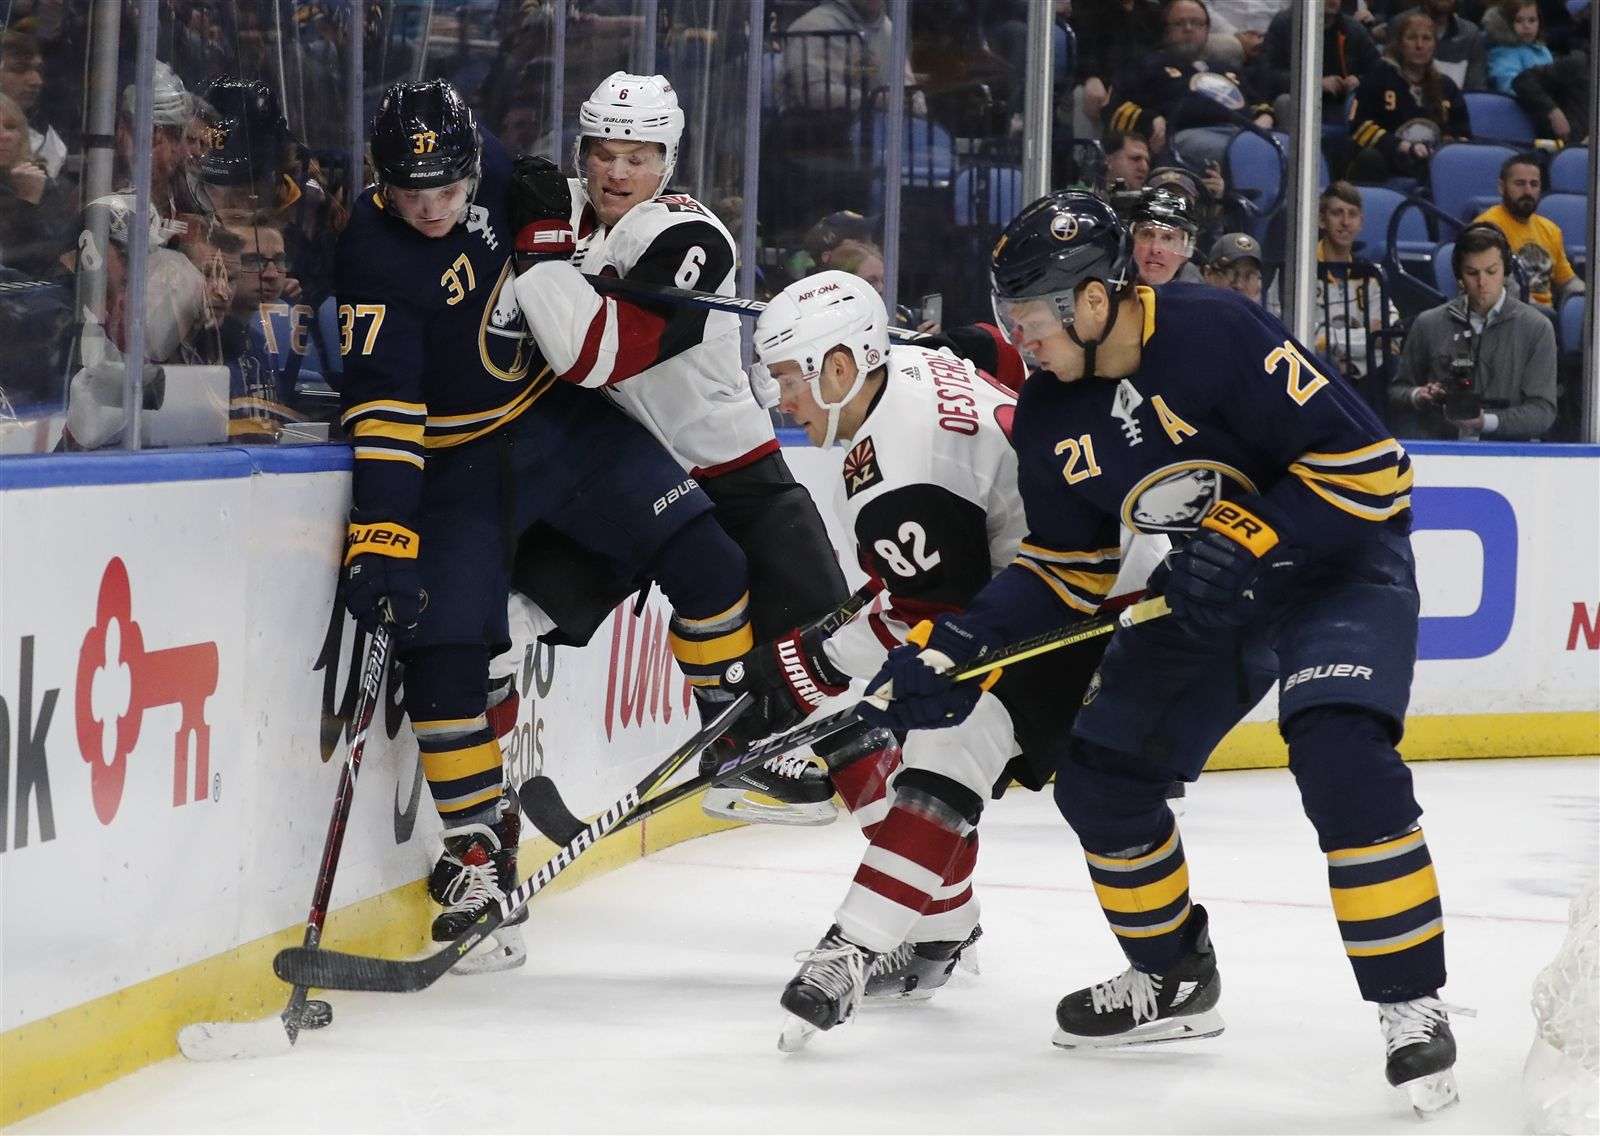 Buffalo Sabres Casey Mittelstadt gets checked by Arizona Coyotes Jacob Chychrun in the first period.